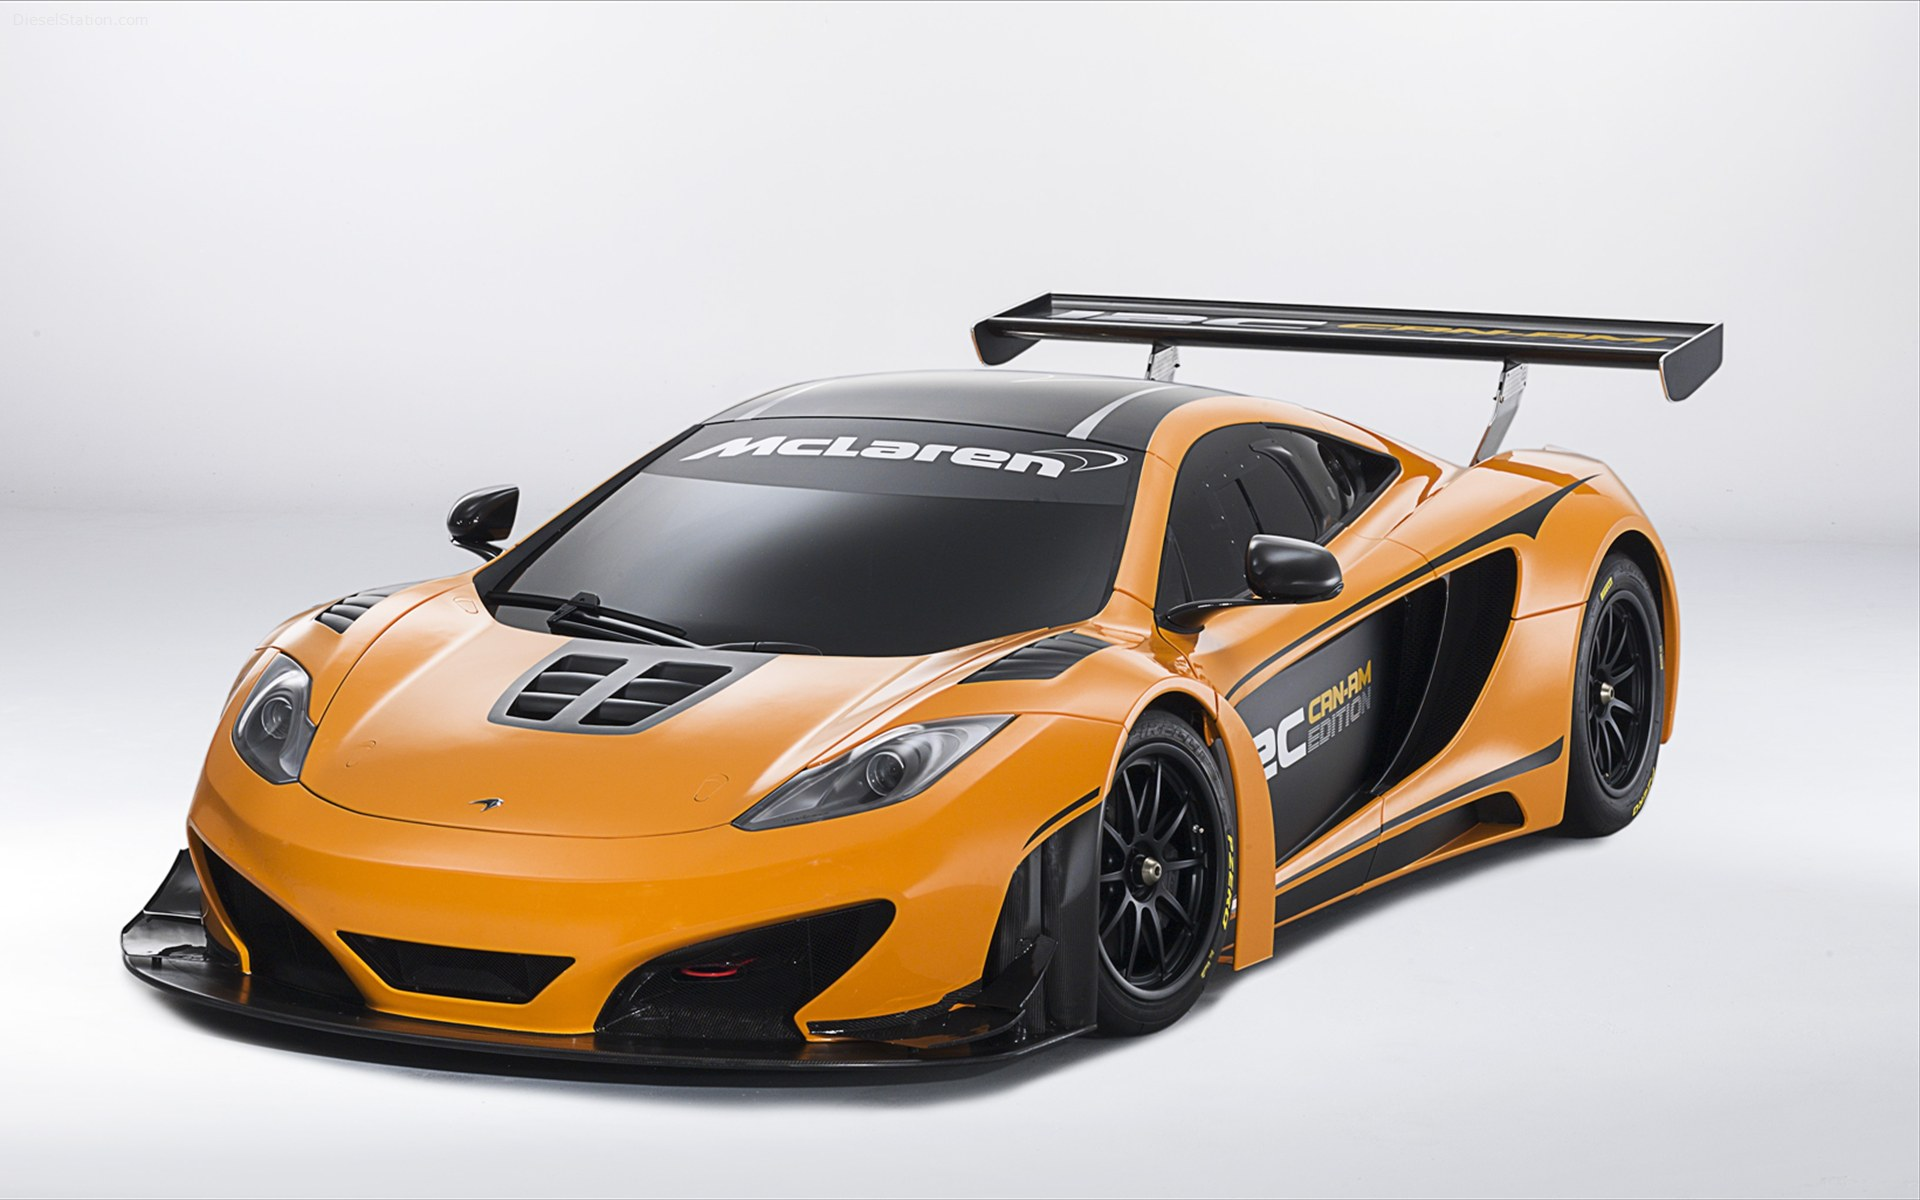 Mclaren 12c Racing Concept Wallpaper Hd Car Wallpapers